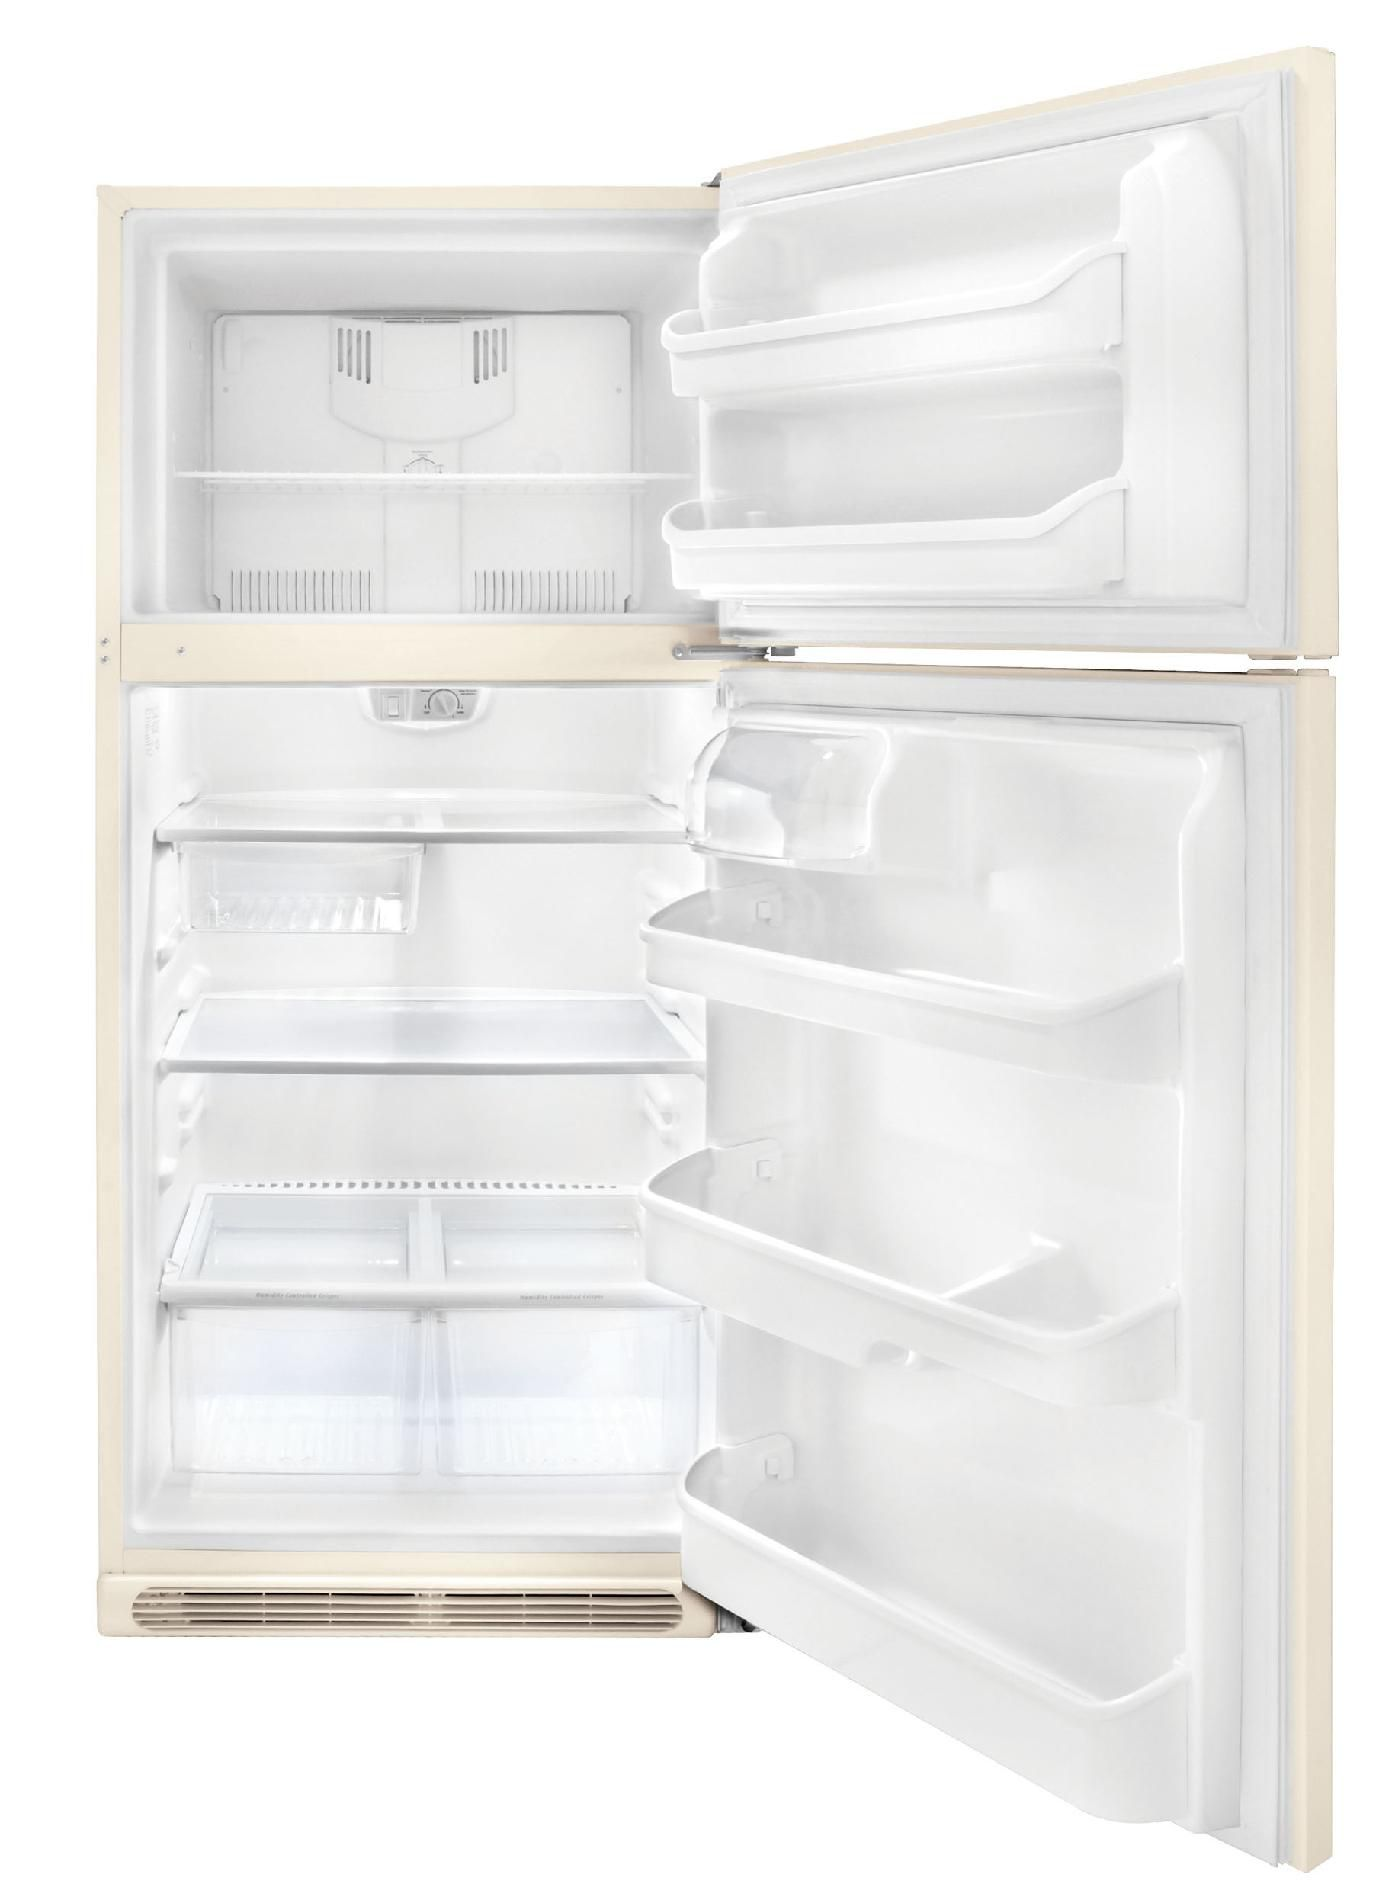 Frigidaire 20.6 cu. ft Top-Freezer Refrigerator - Bisque